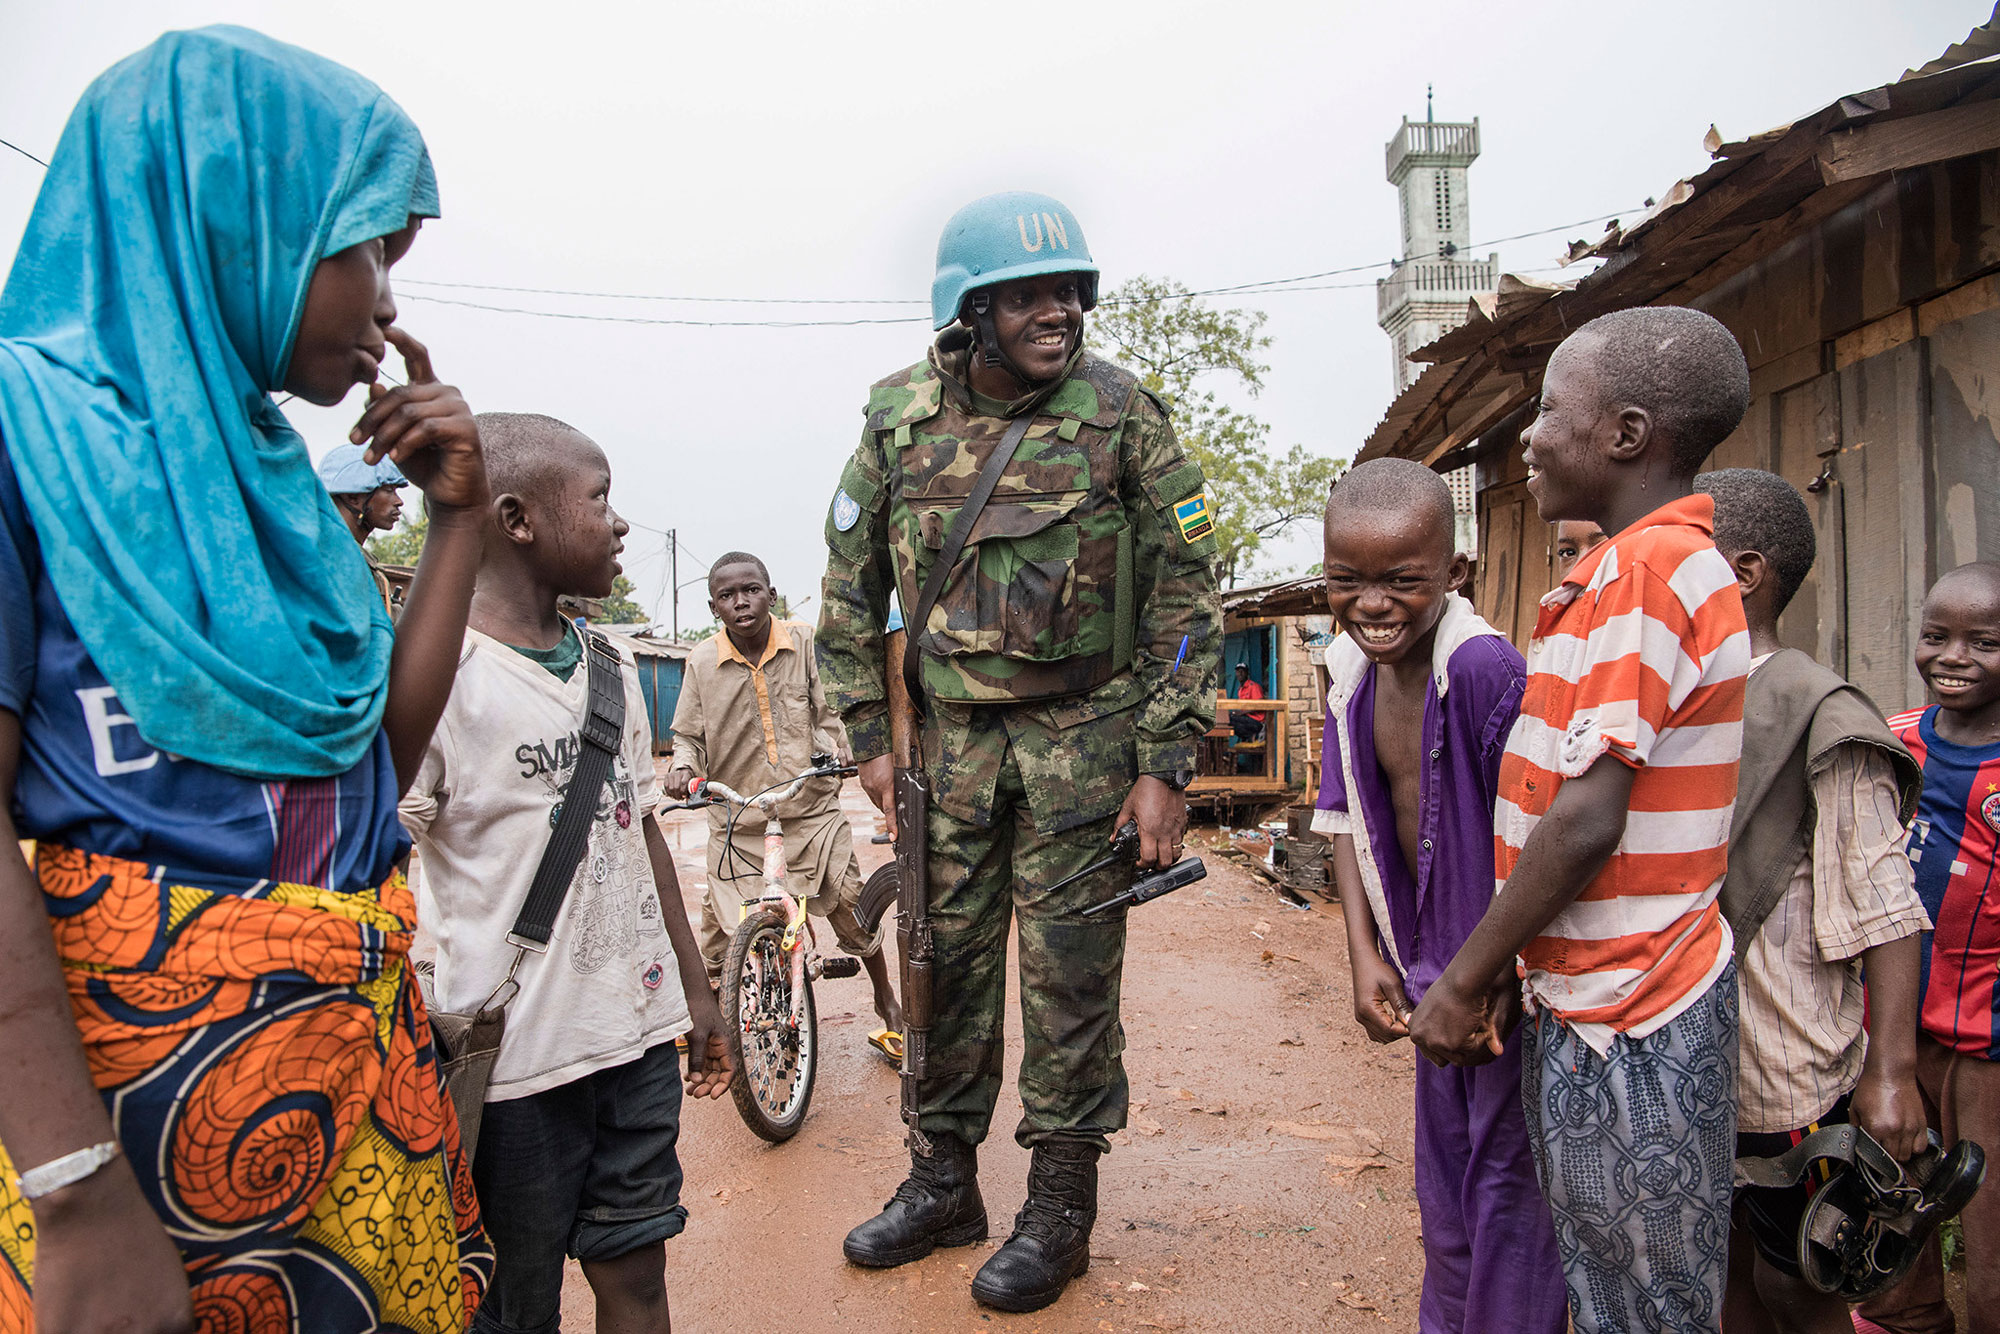 Central African Republic's message to UN: 'The only thing we want is peace'